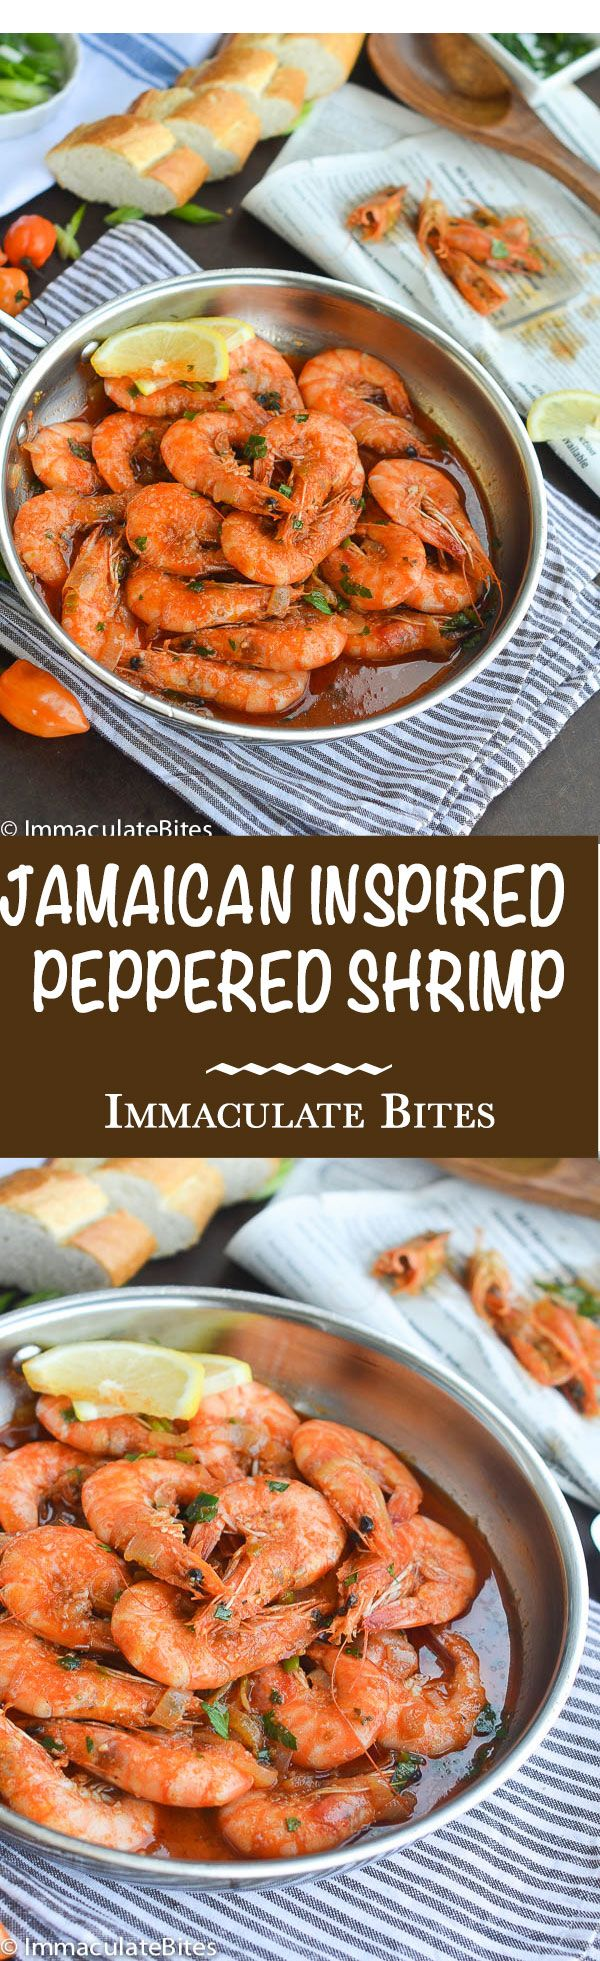 Jamaican inspired peppered shrimp- from the